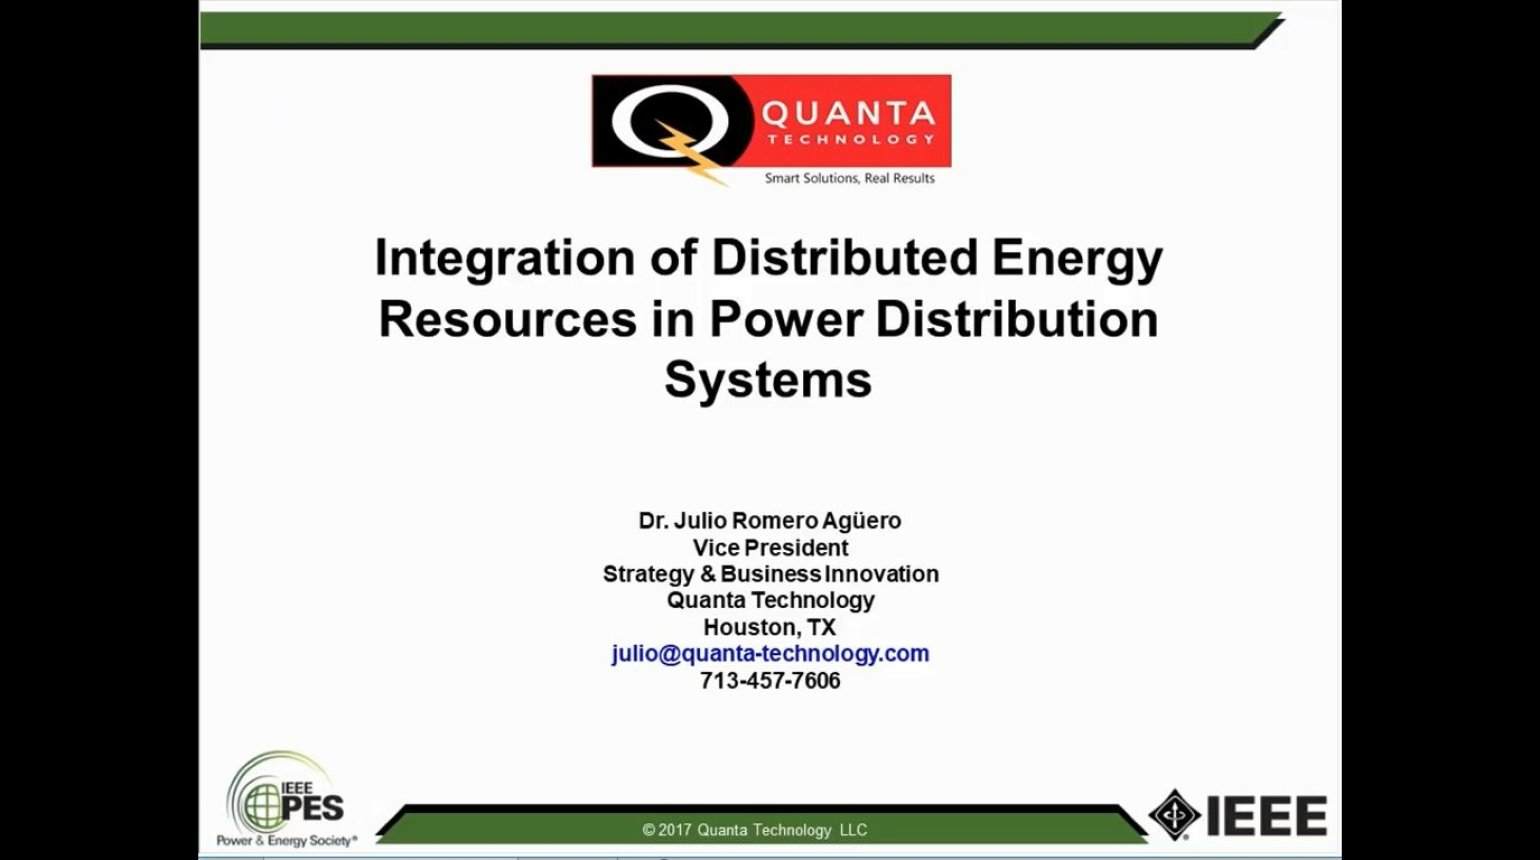 Integration of Distributed Energy Resources in Power Distribution Systems